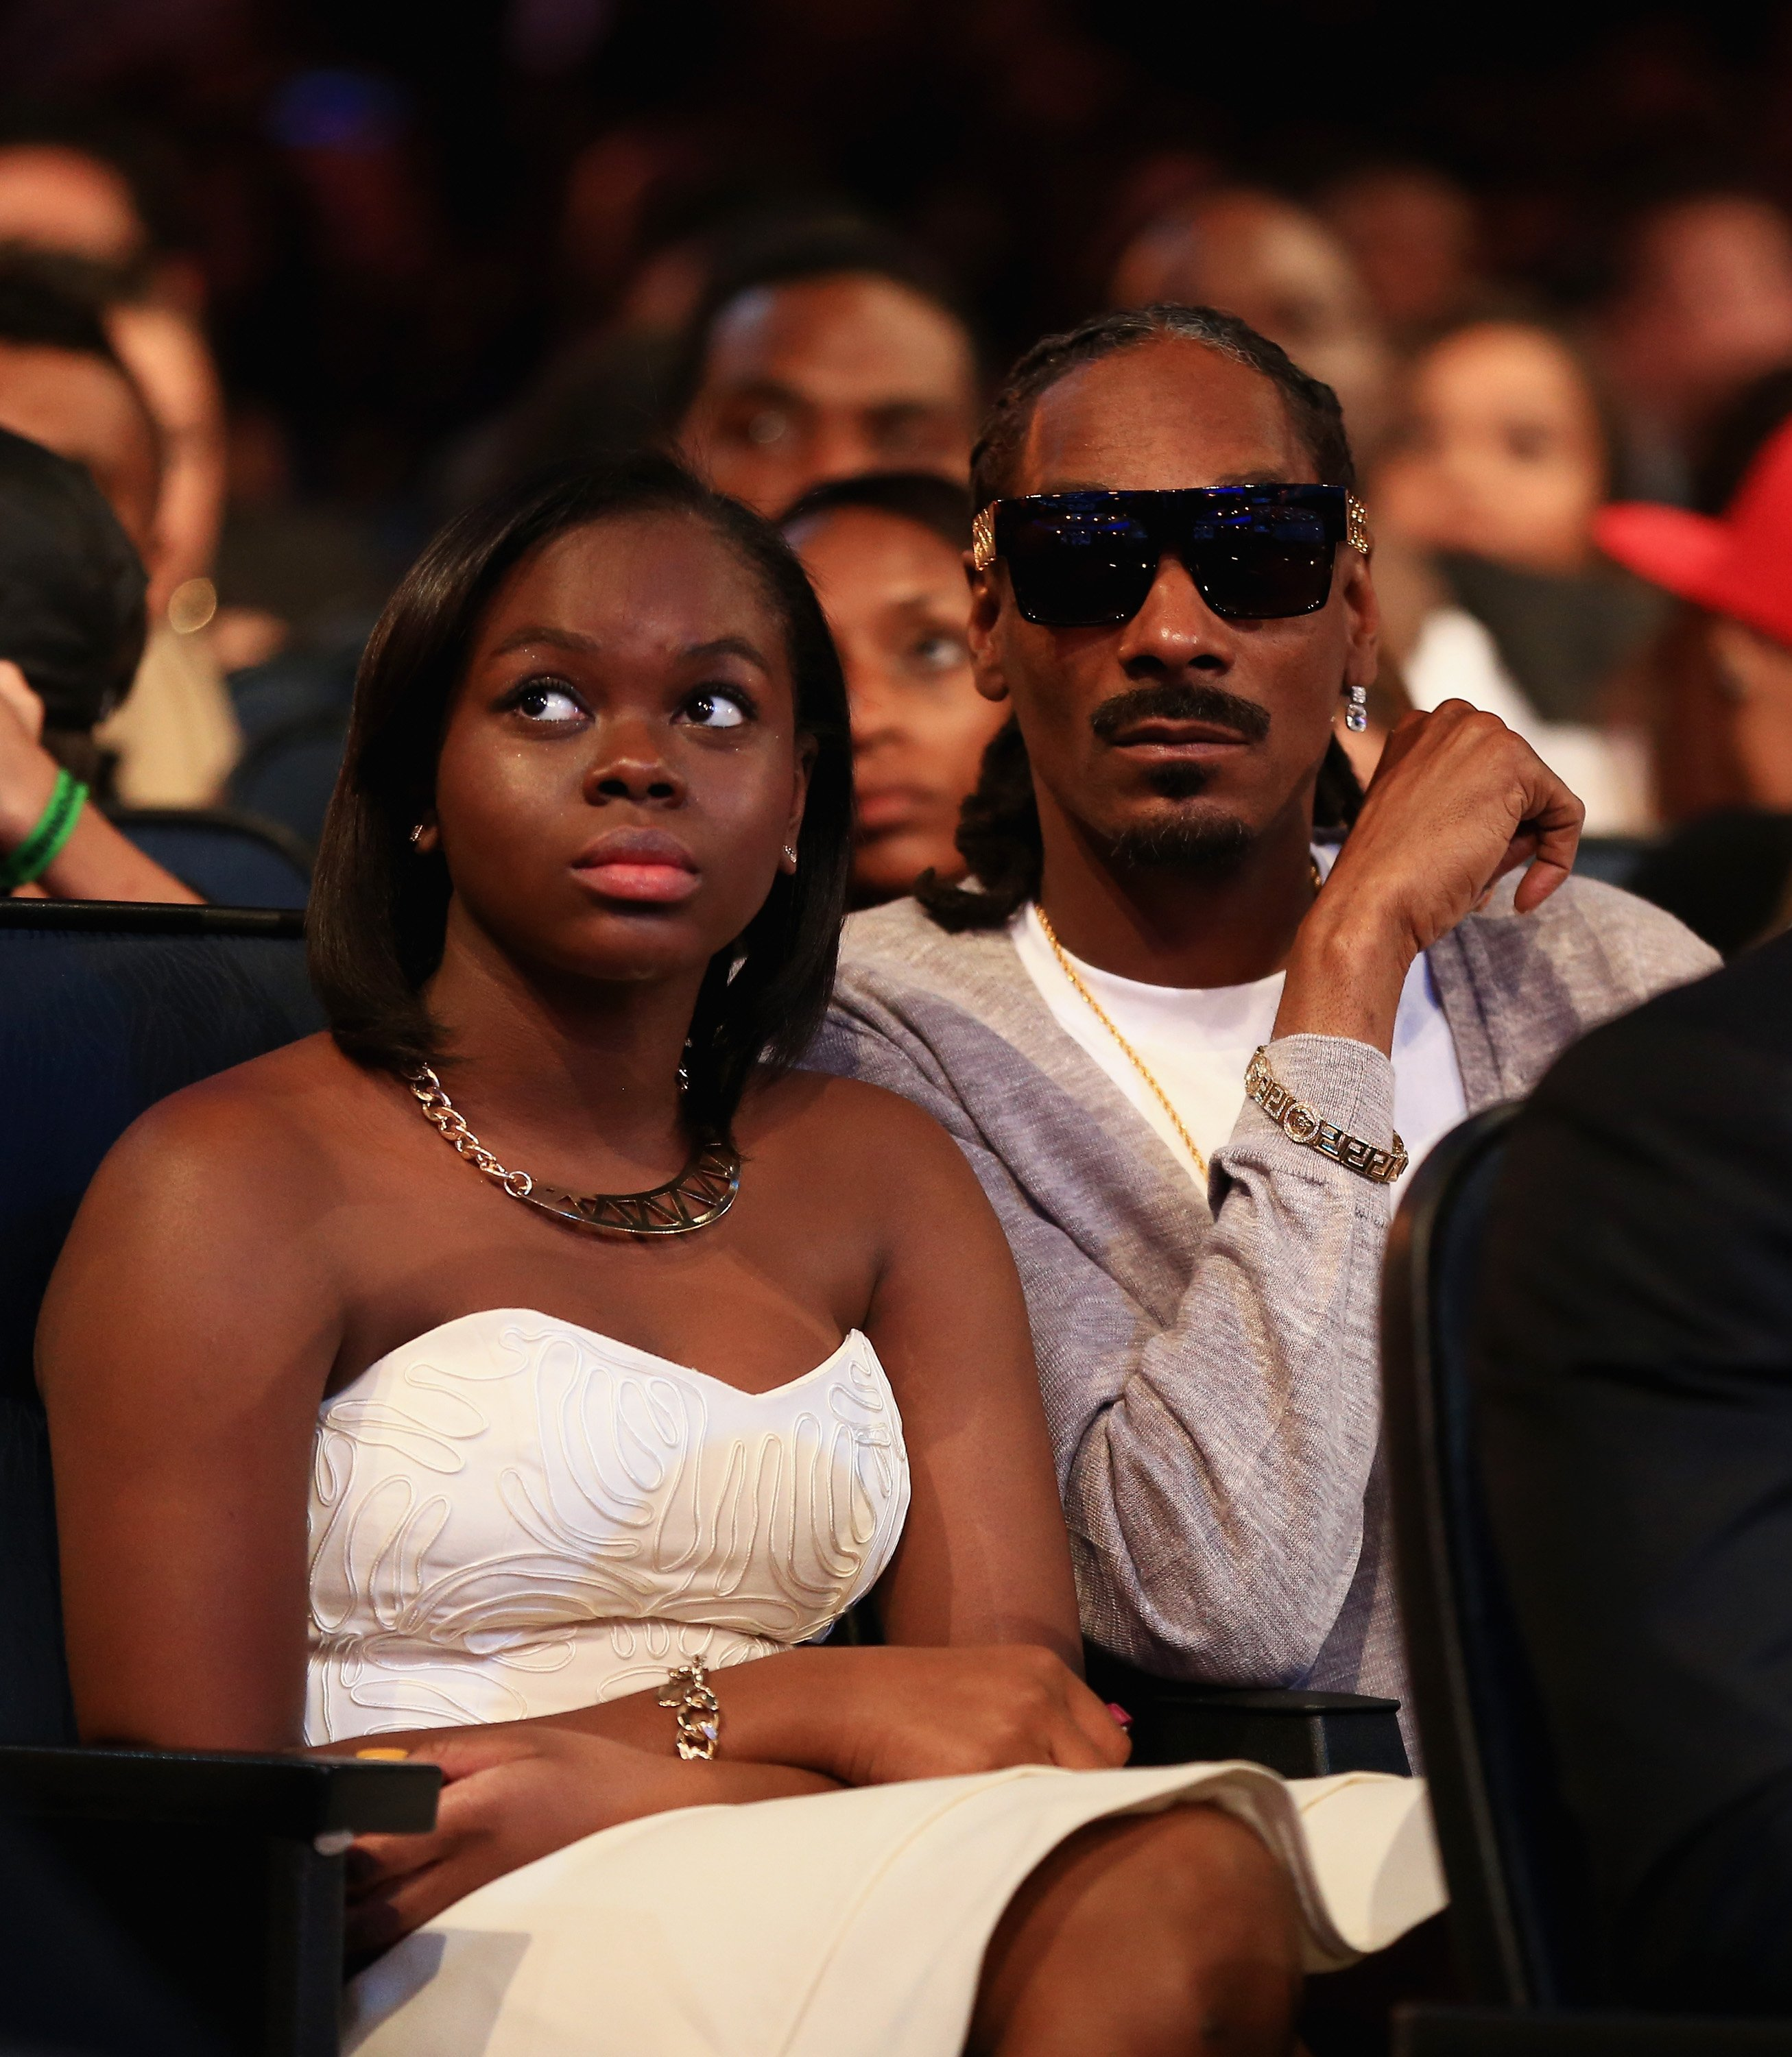 Snoop Dogg and Cori Broadus attend the BET Awards '14 at Nokia Theatre on June 29, 2014 in Los Angeles, California.  Source: Getty Images